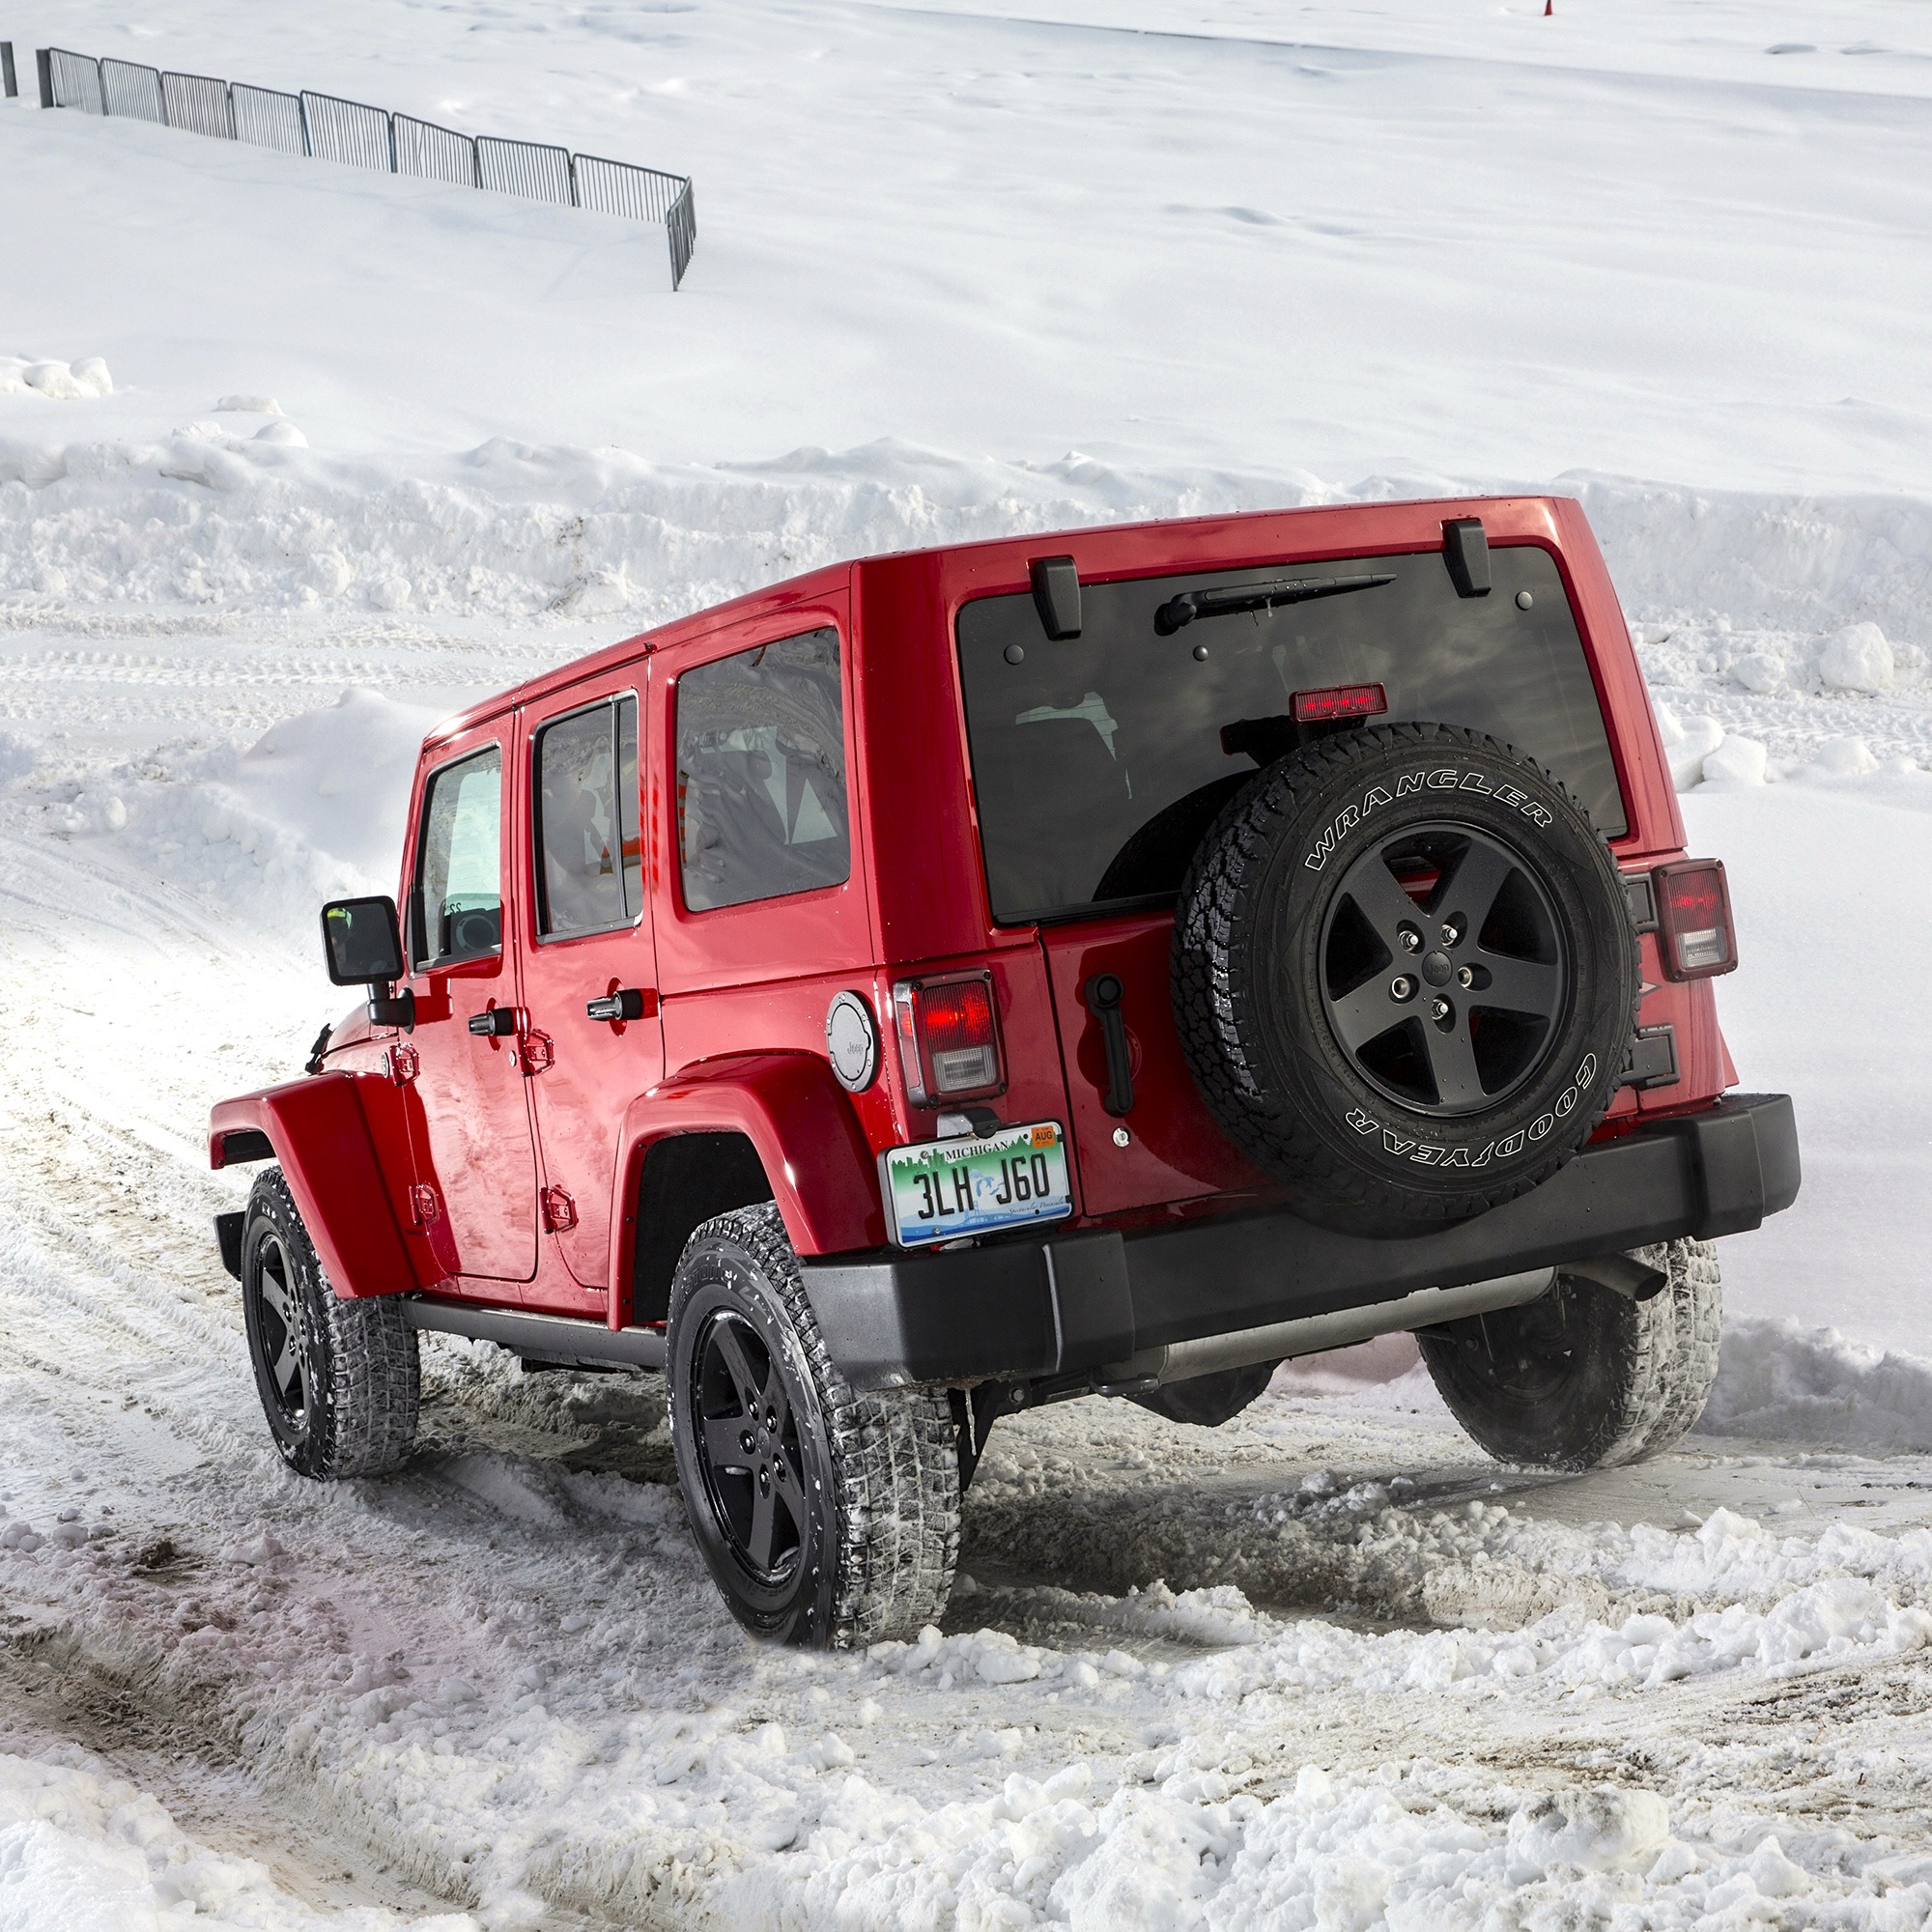 jeep-off-road-snow-05.jpg